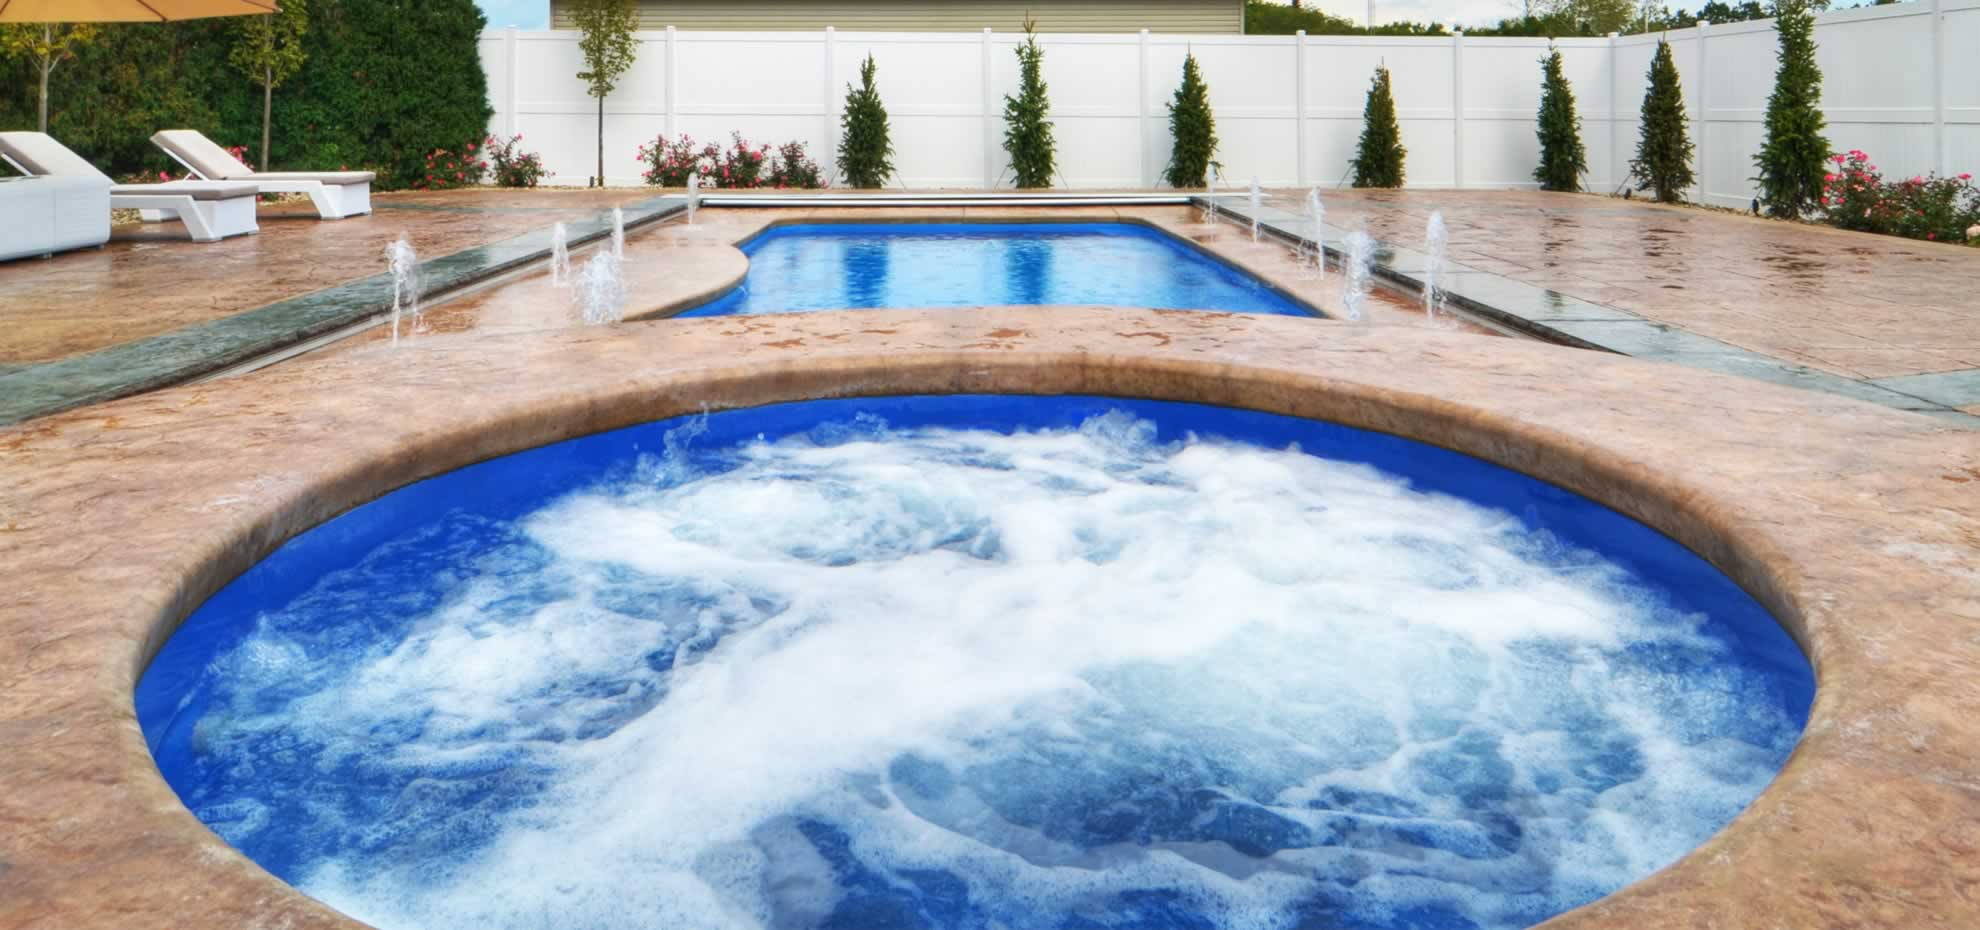 Fibreglass pool with coping by Leisure Pools